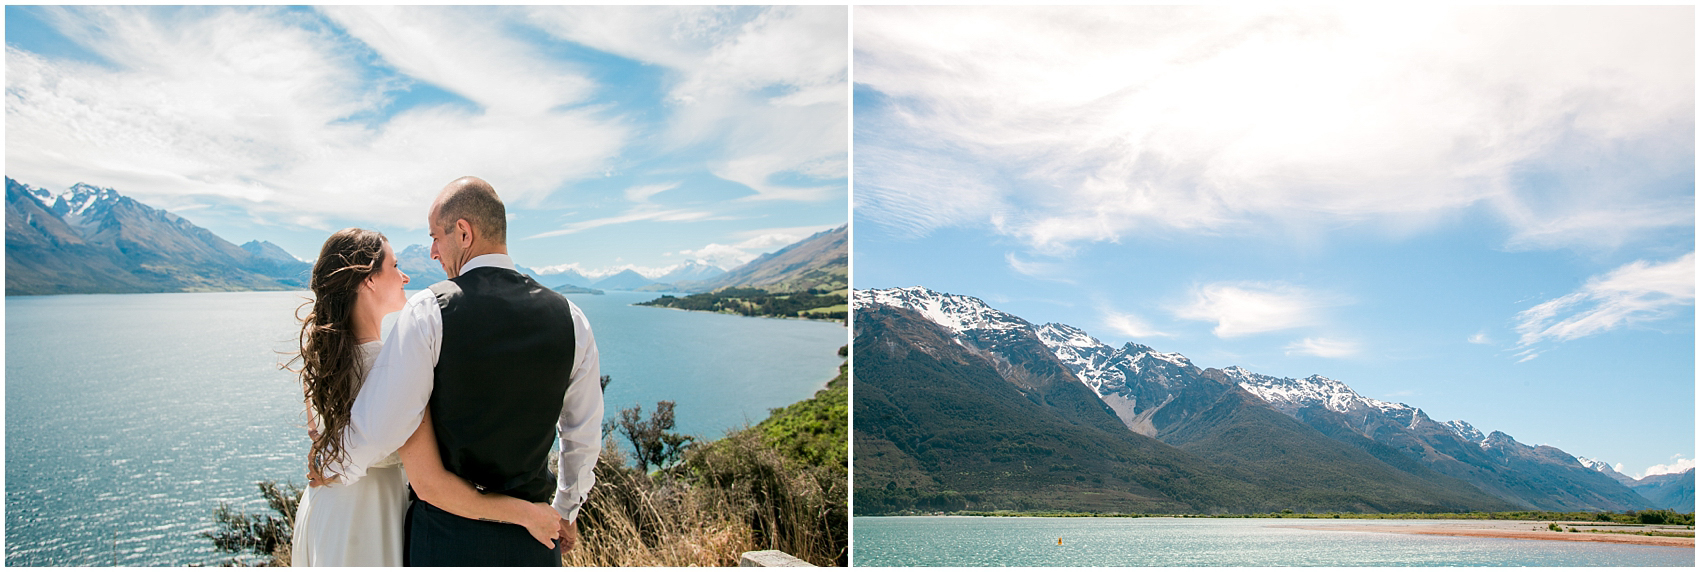 Queenstown New Zealand Wedding Photographer Bruna Fabricio Smetona Photo-0031.jpg